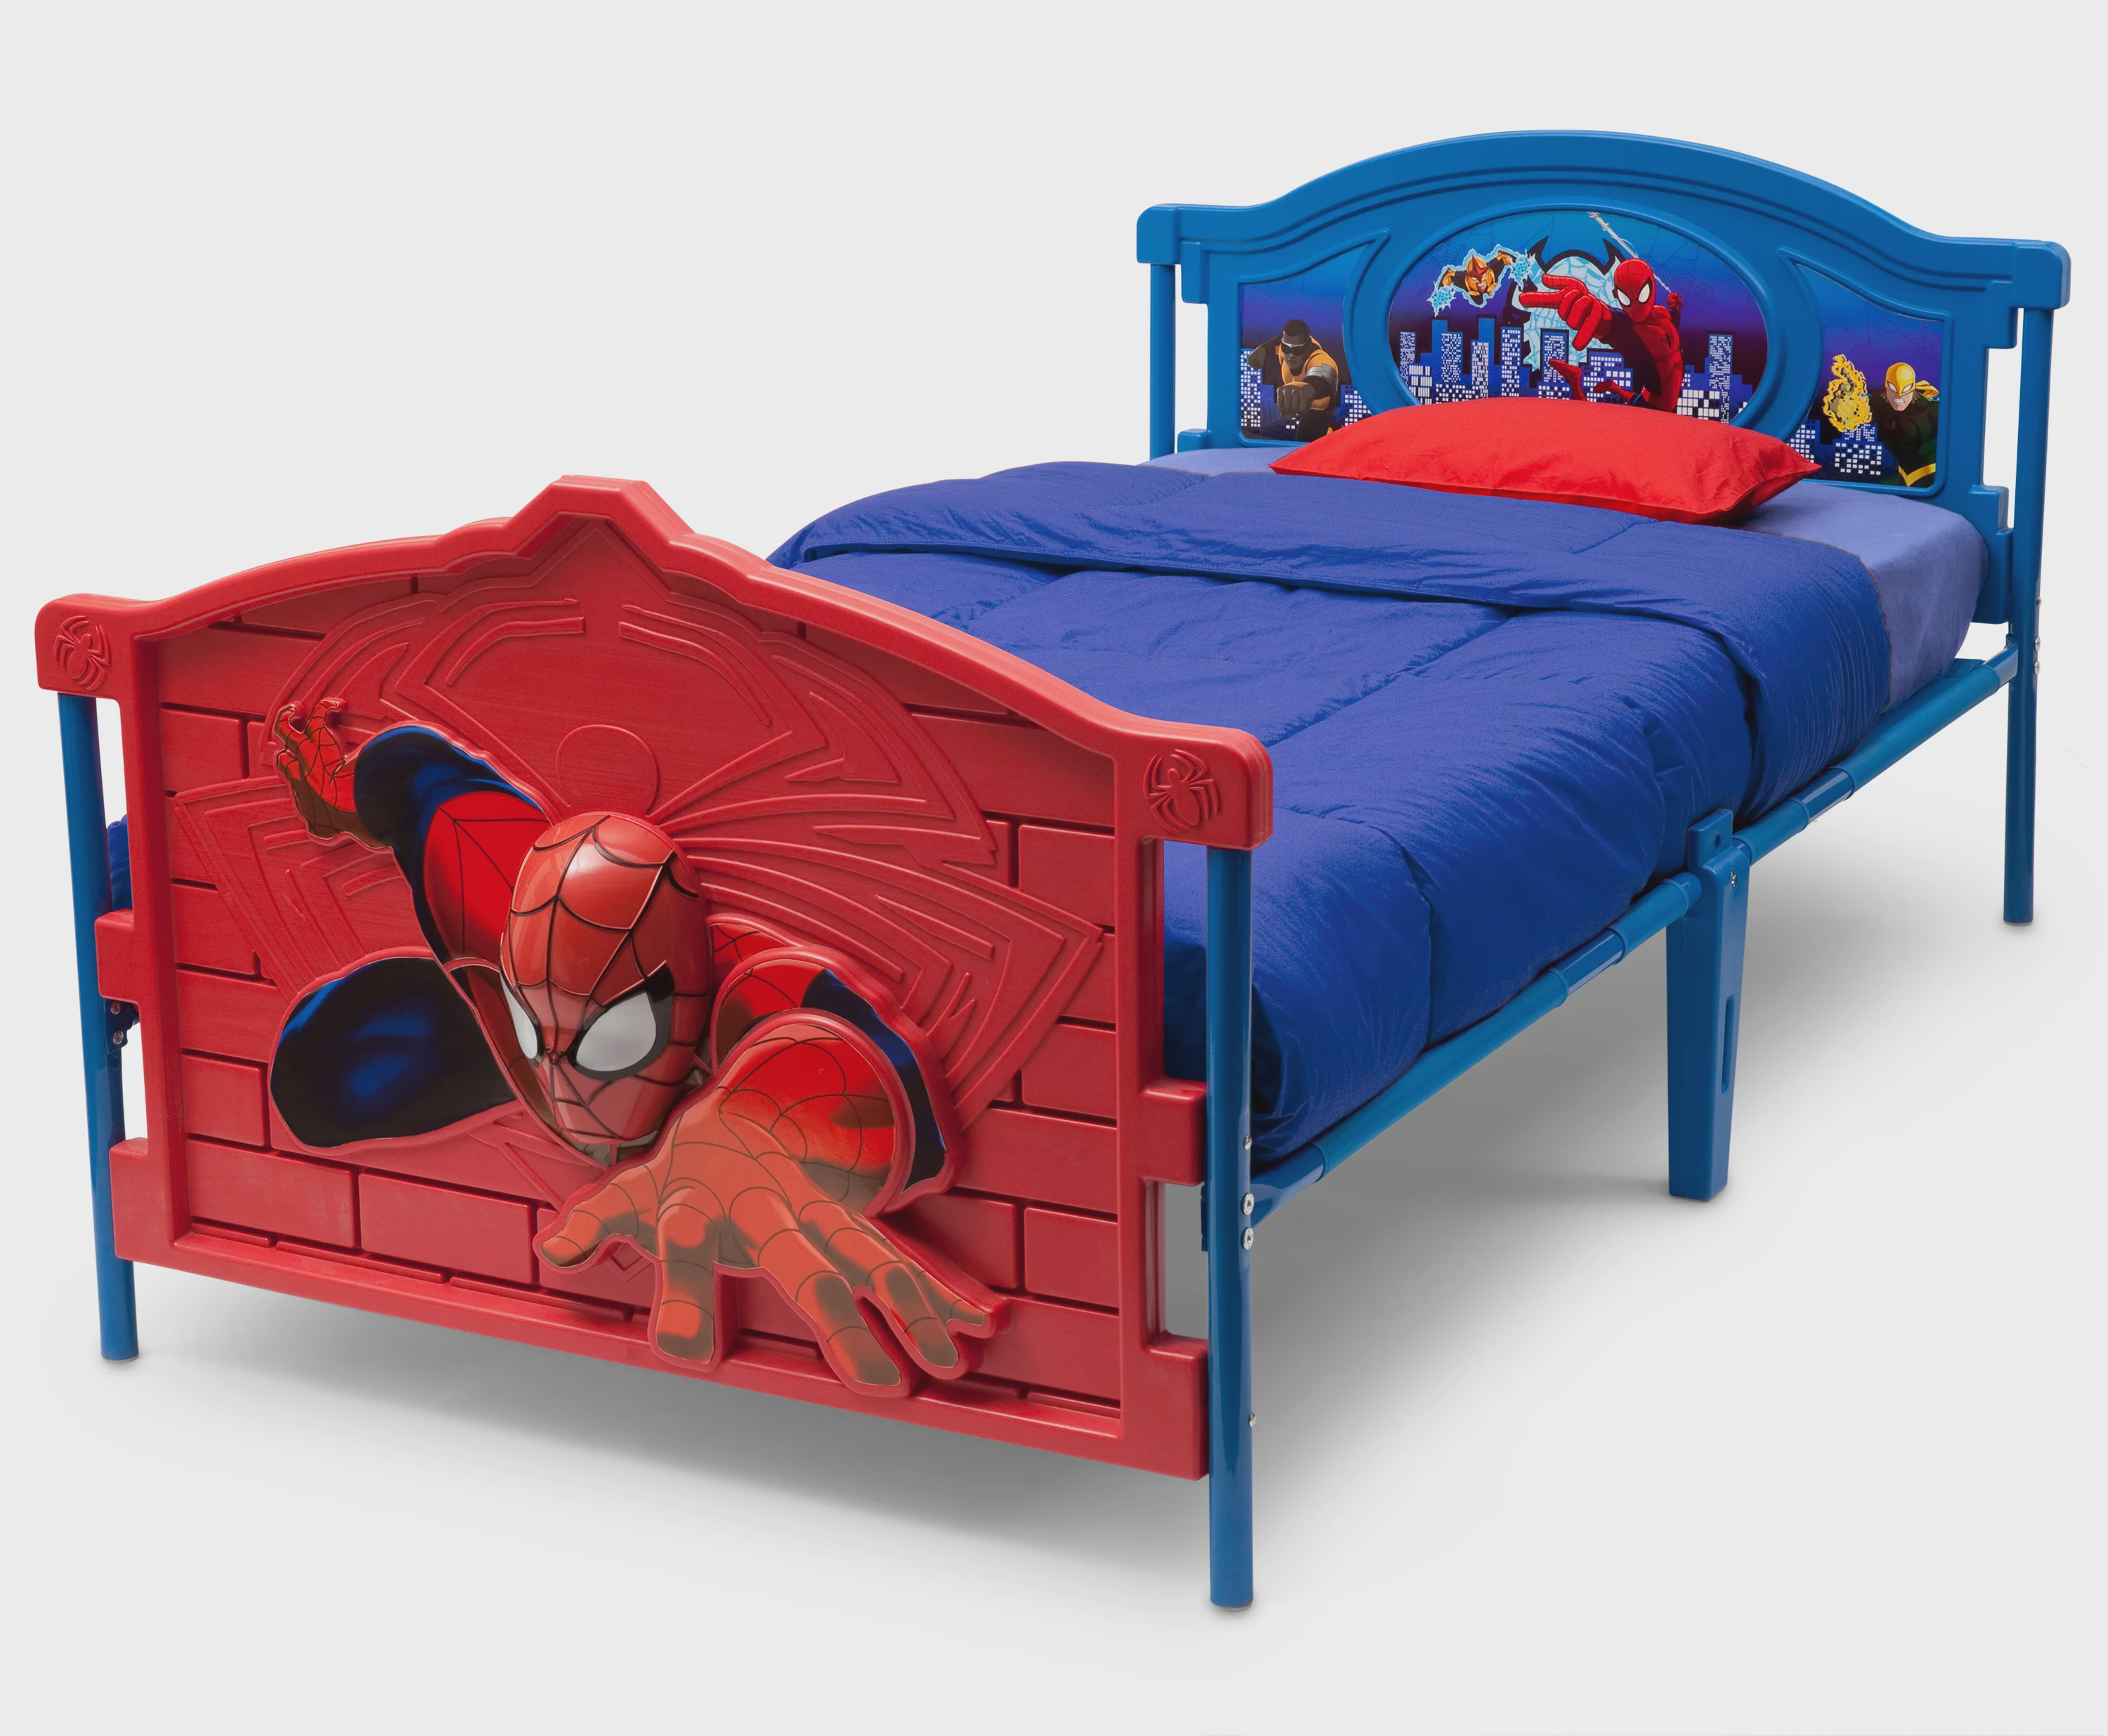 Marvel Spider-Man 3D Twin Bed by Marvel